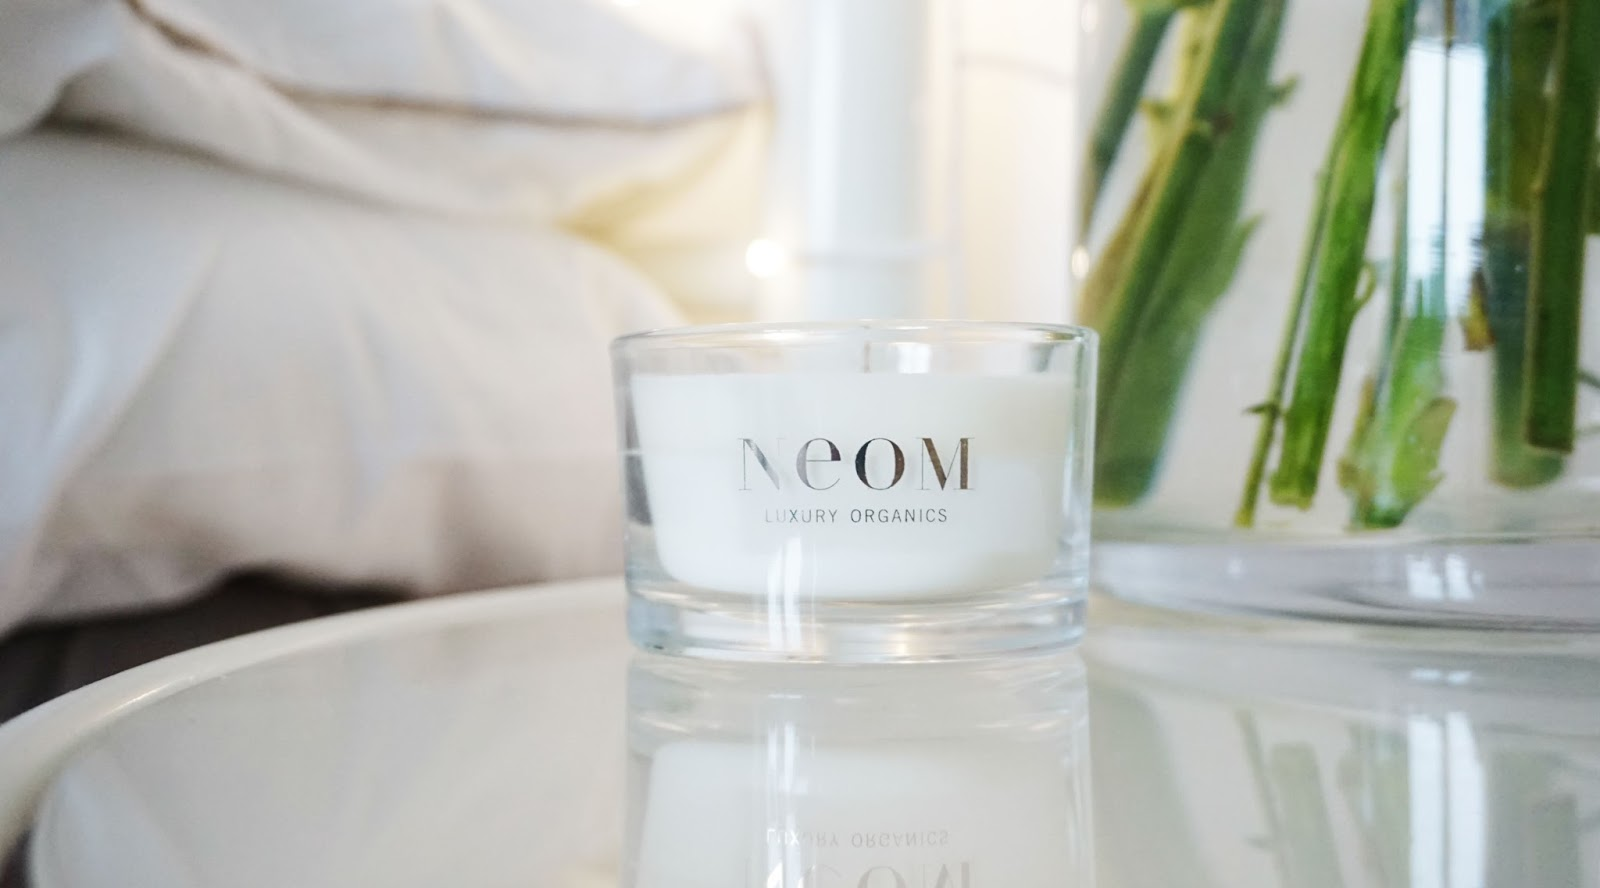 neom candle spring bedroom fresh flowers interiors homeware